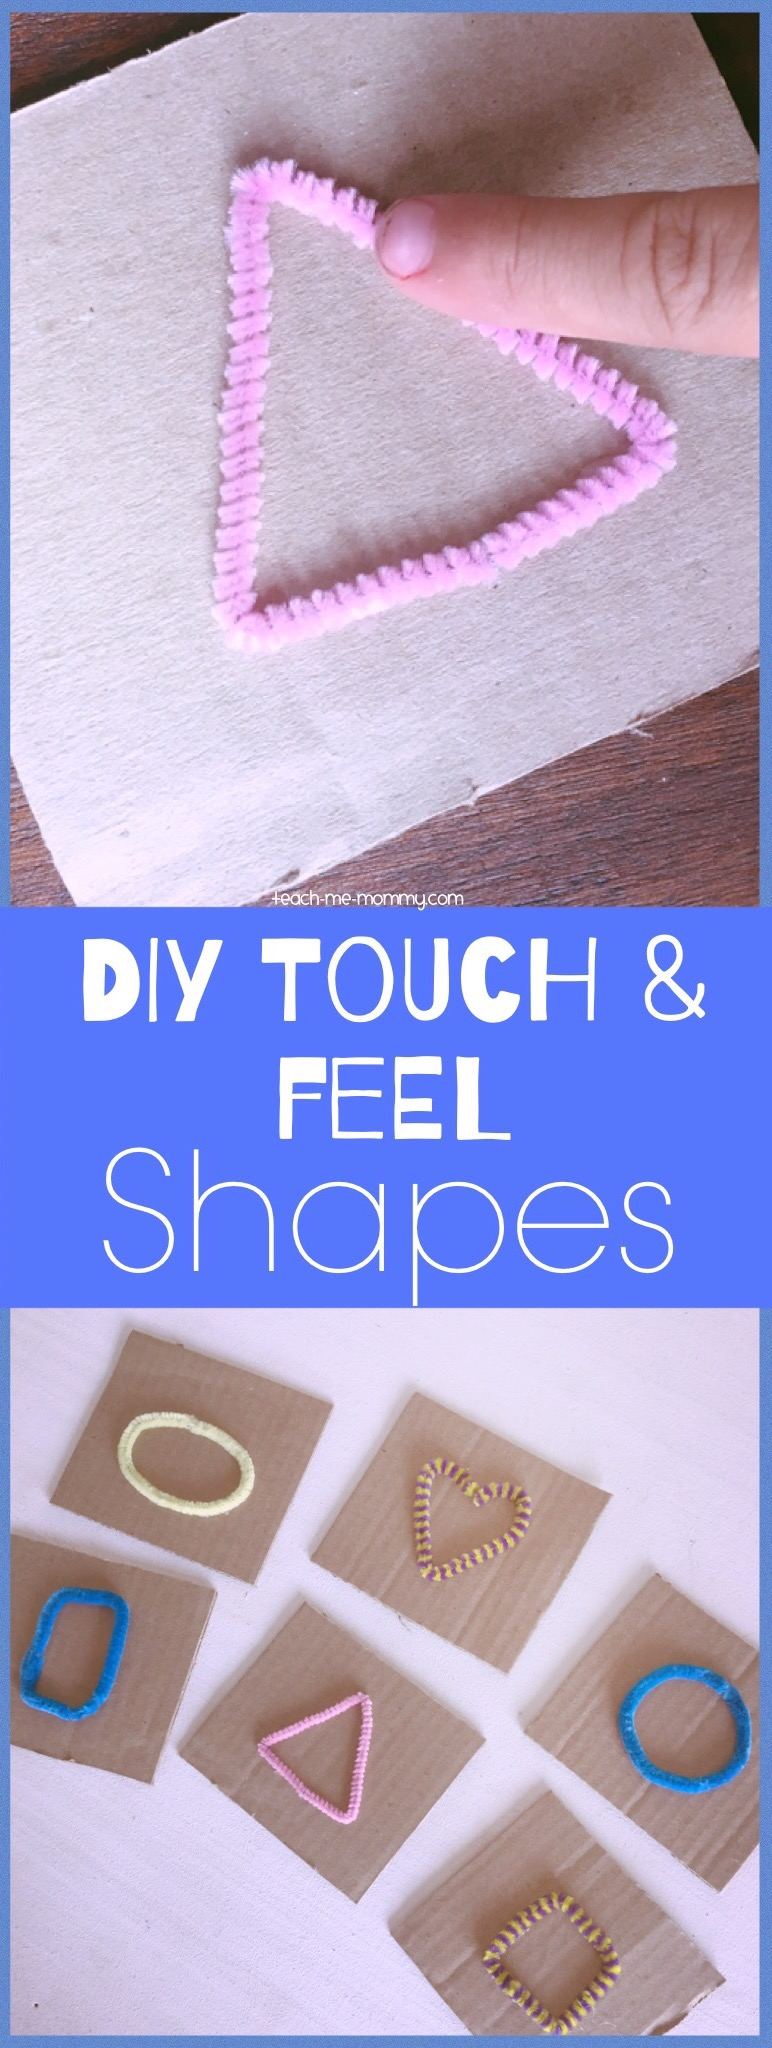 Touch and feel shapes